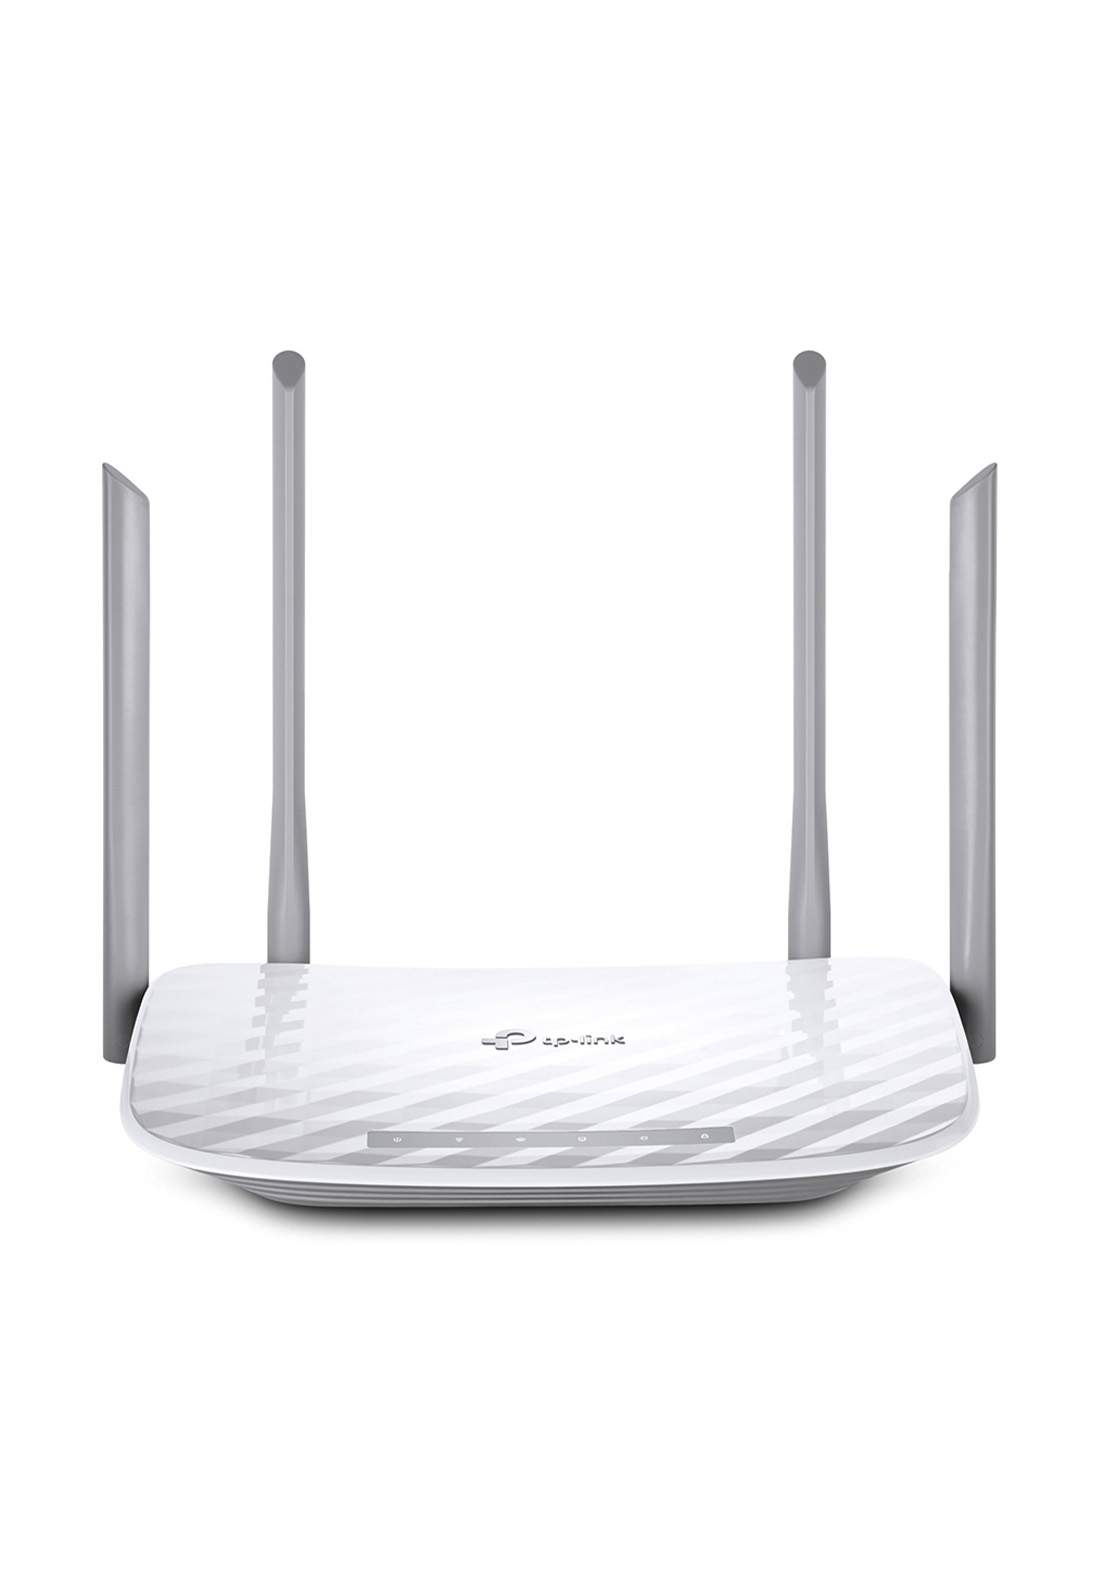 TP-LINK Archer C50 AC1200 Wireless Dual Band Router -White راوتر